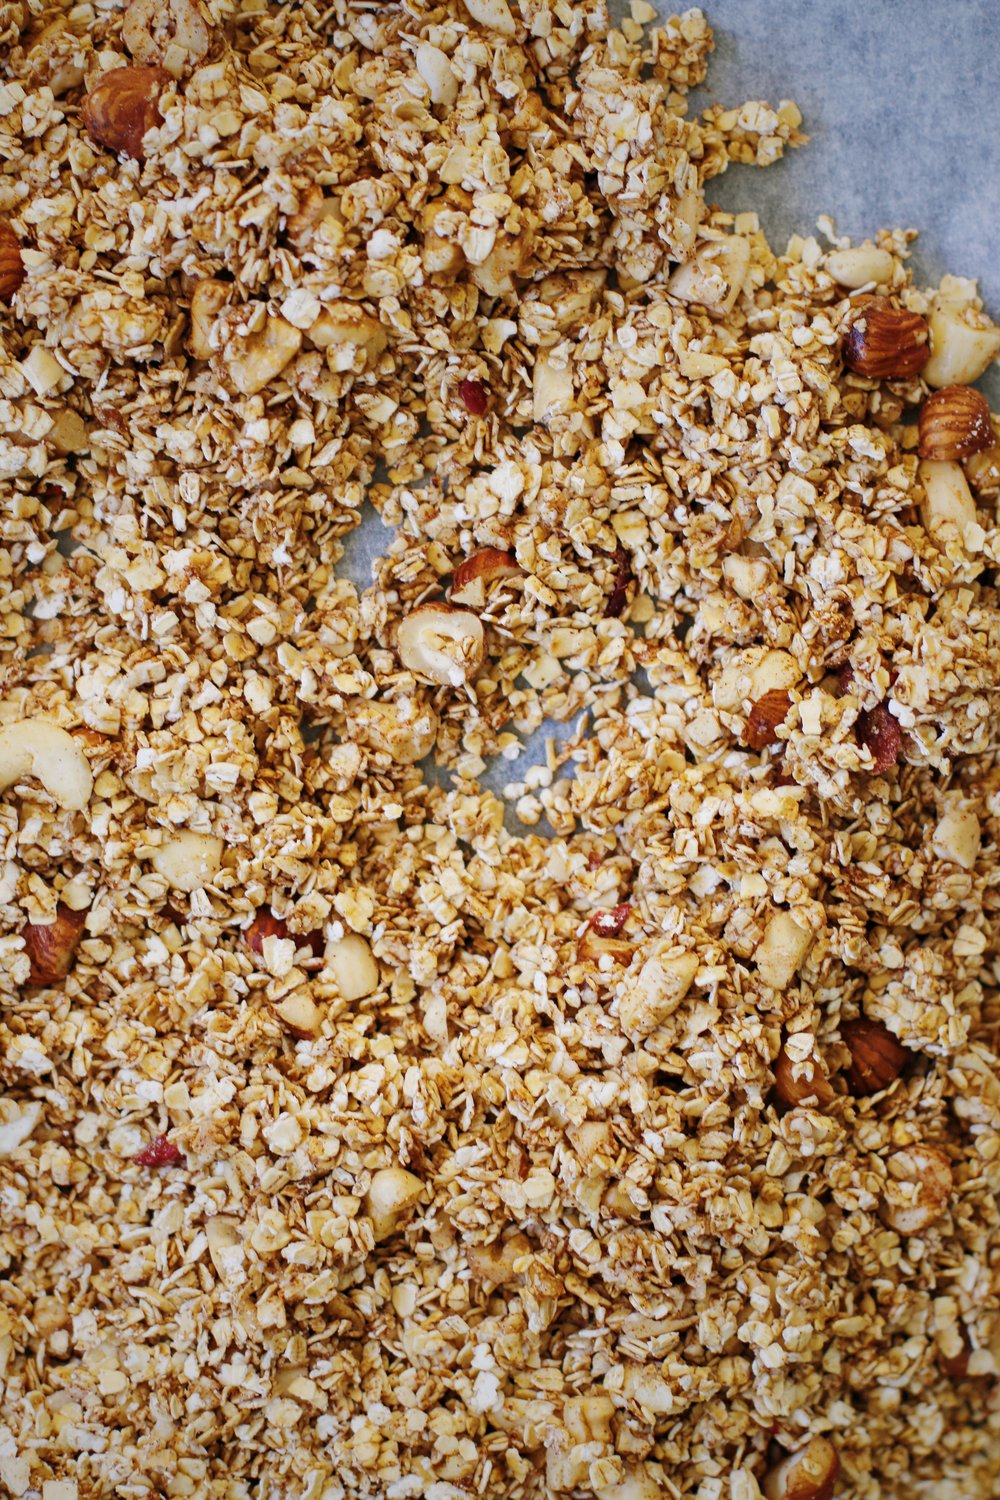 SHAREAT-Winter-Granola